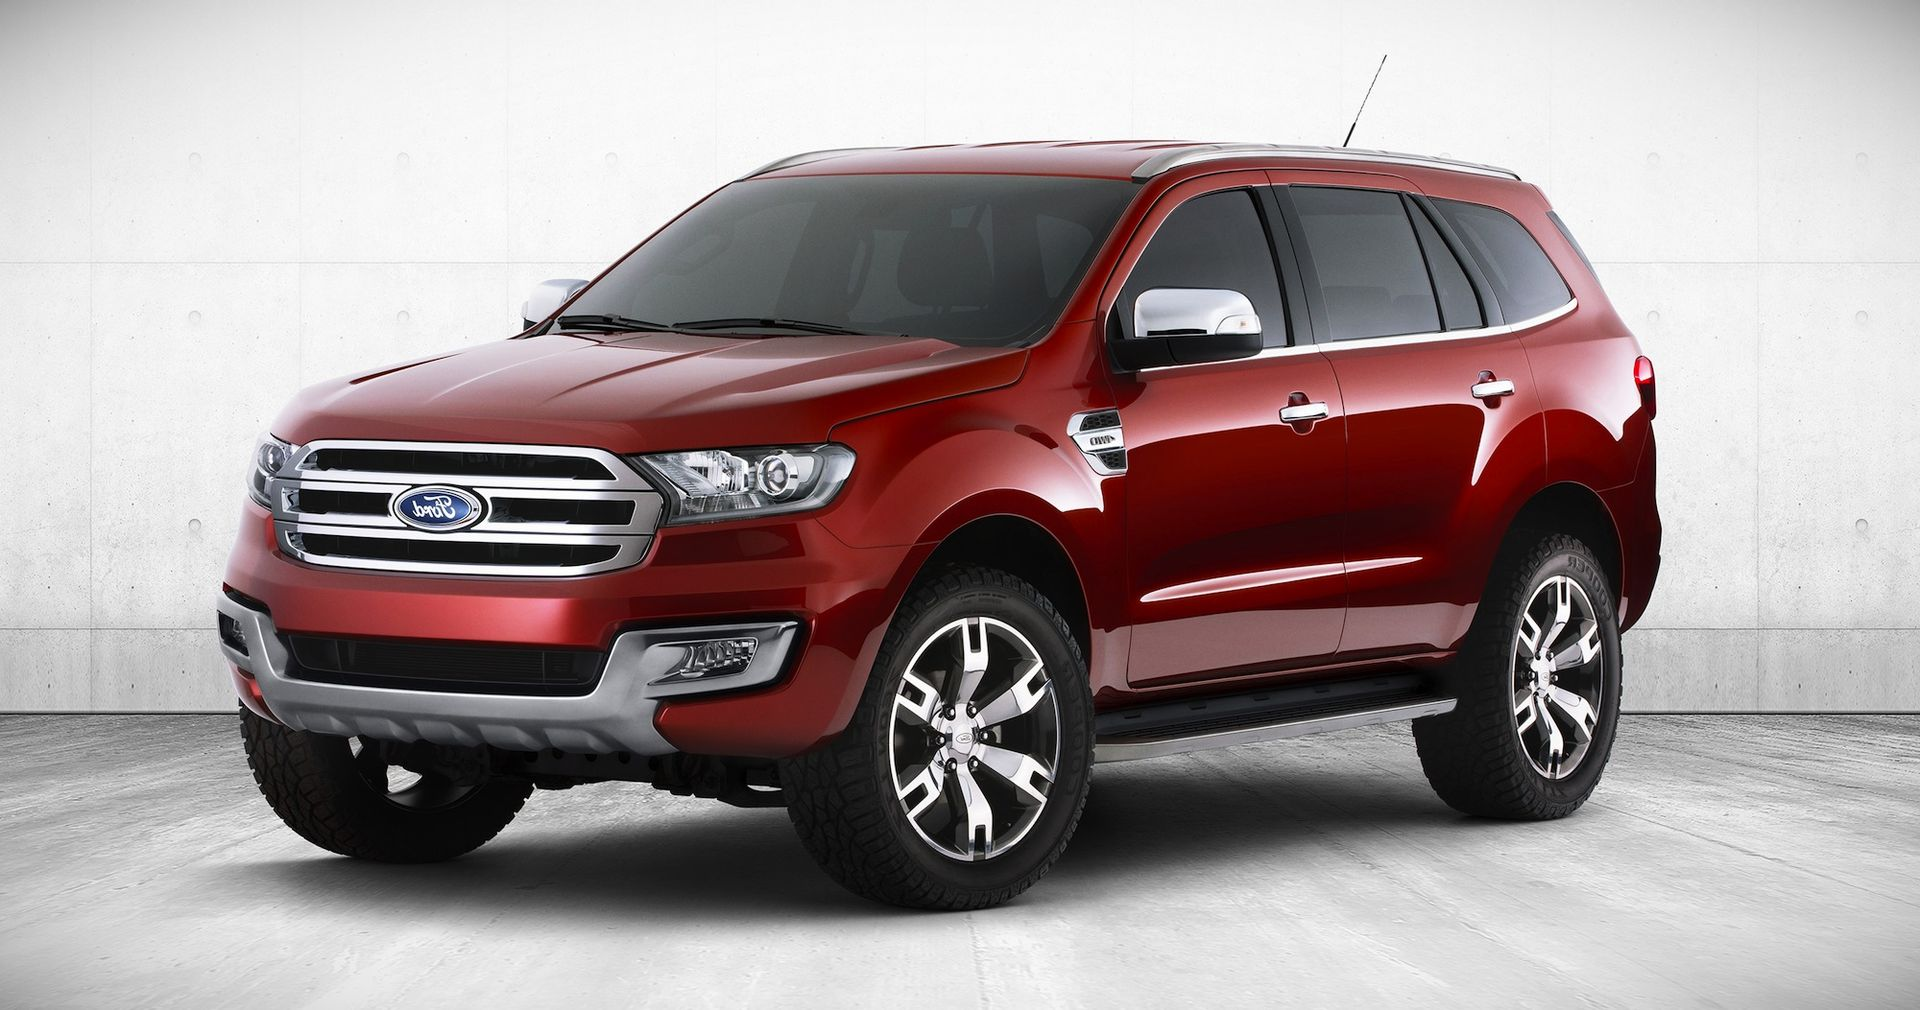 2019 Ford Everest Release Date and MSRP